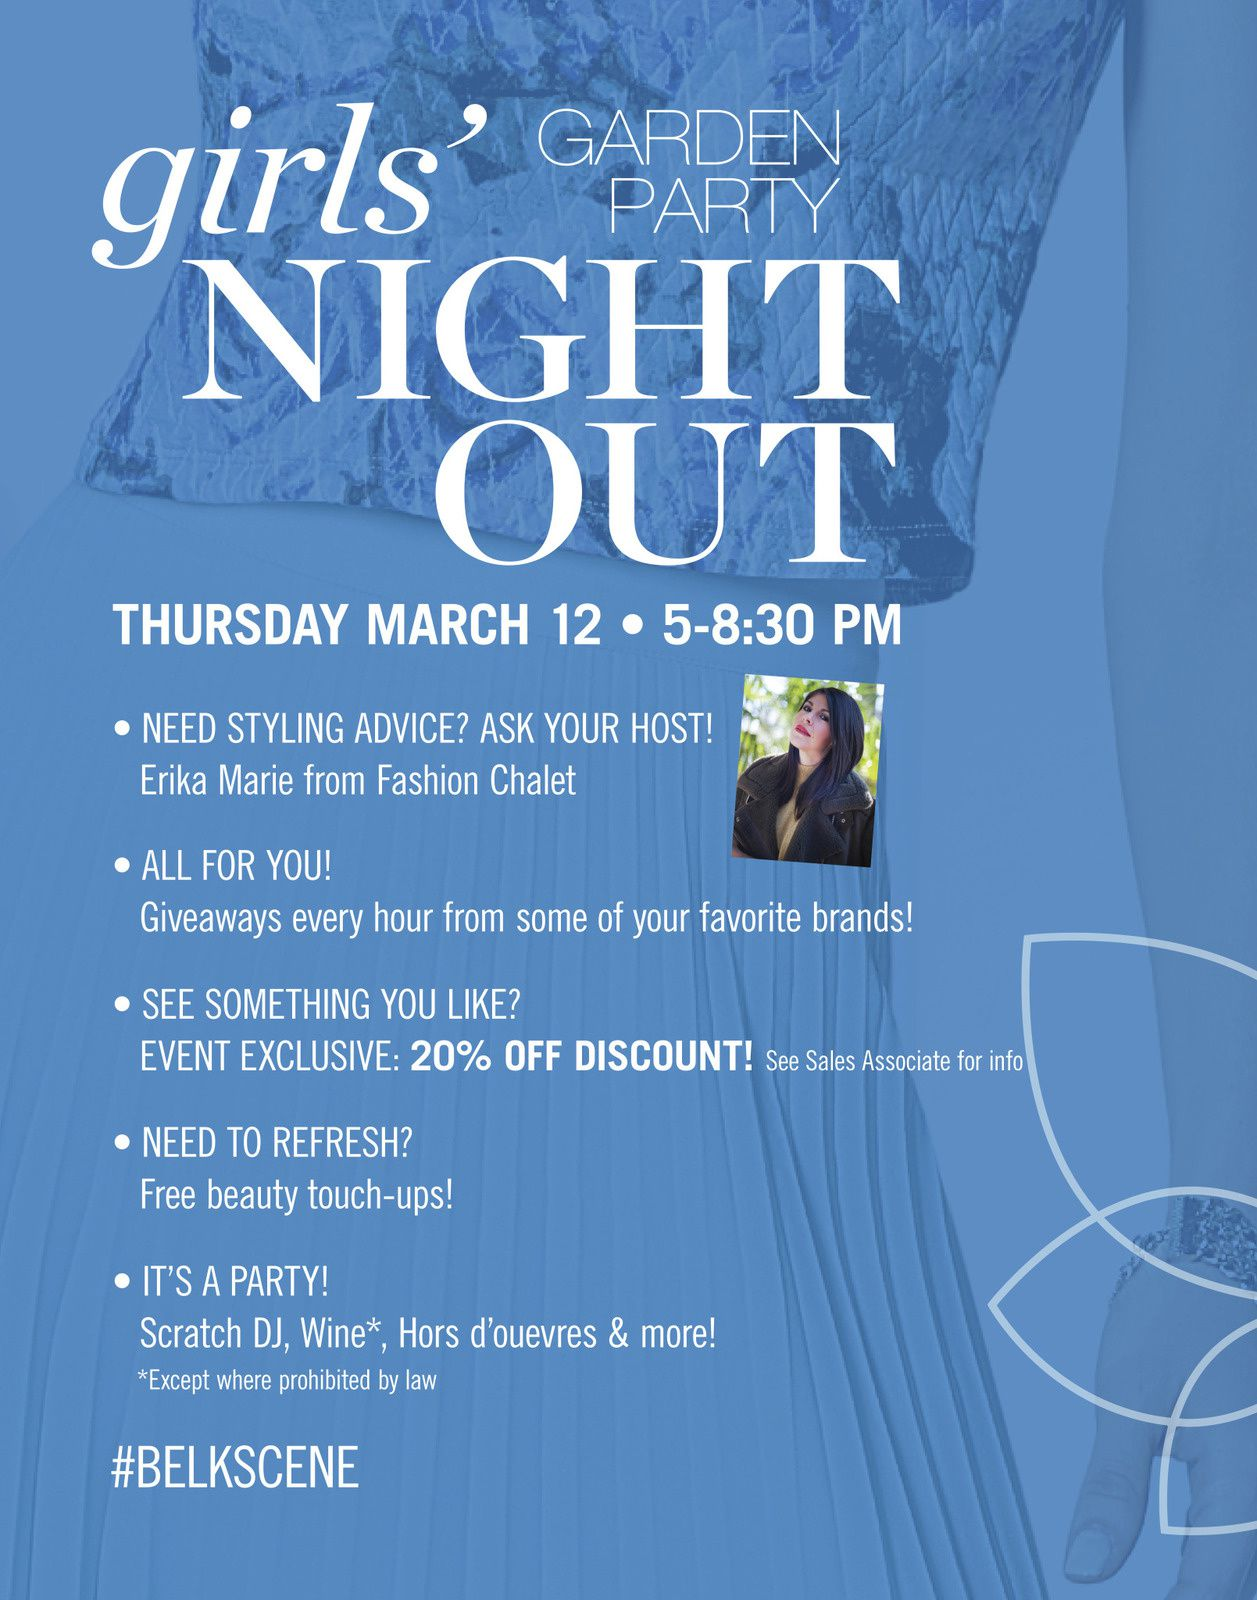 Girls Night Out! Join Me with Belk at Crabtree Valley Mall - March 12, 2015